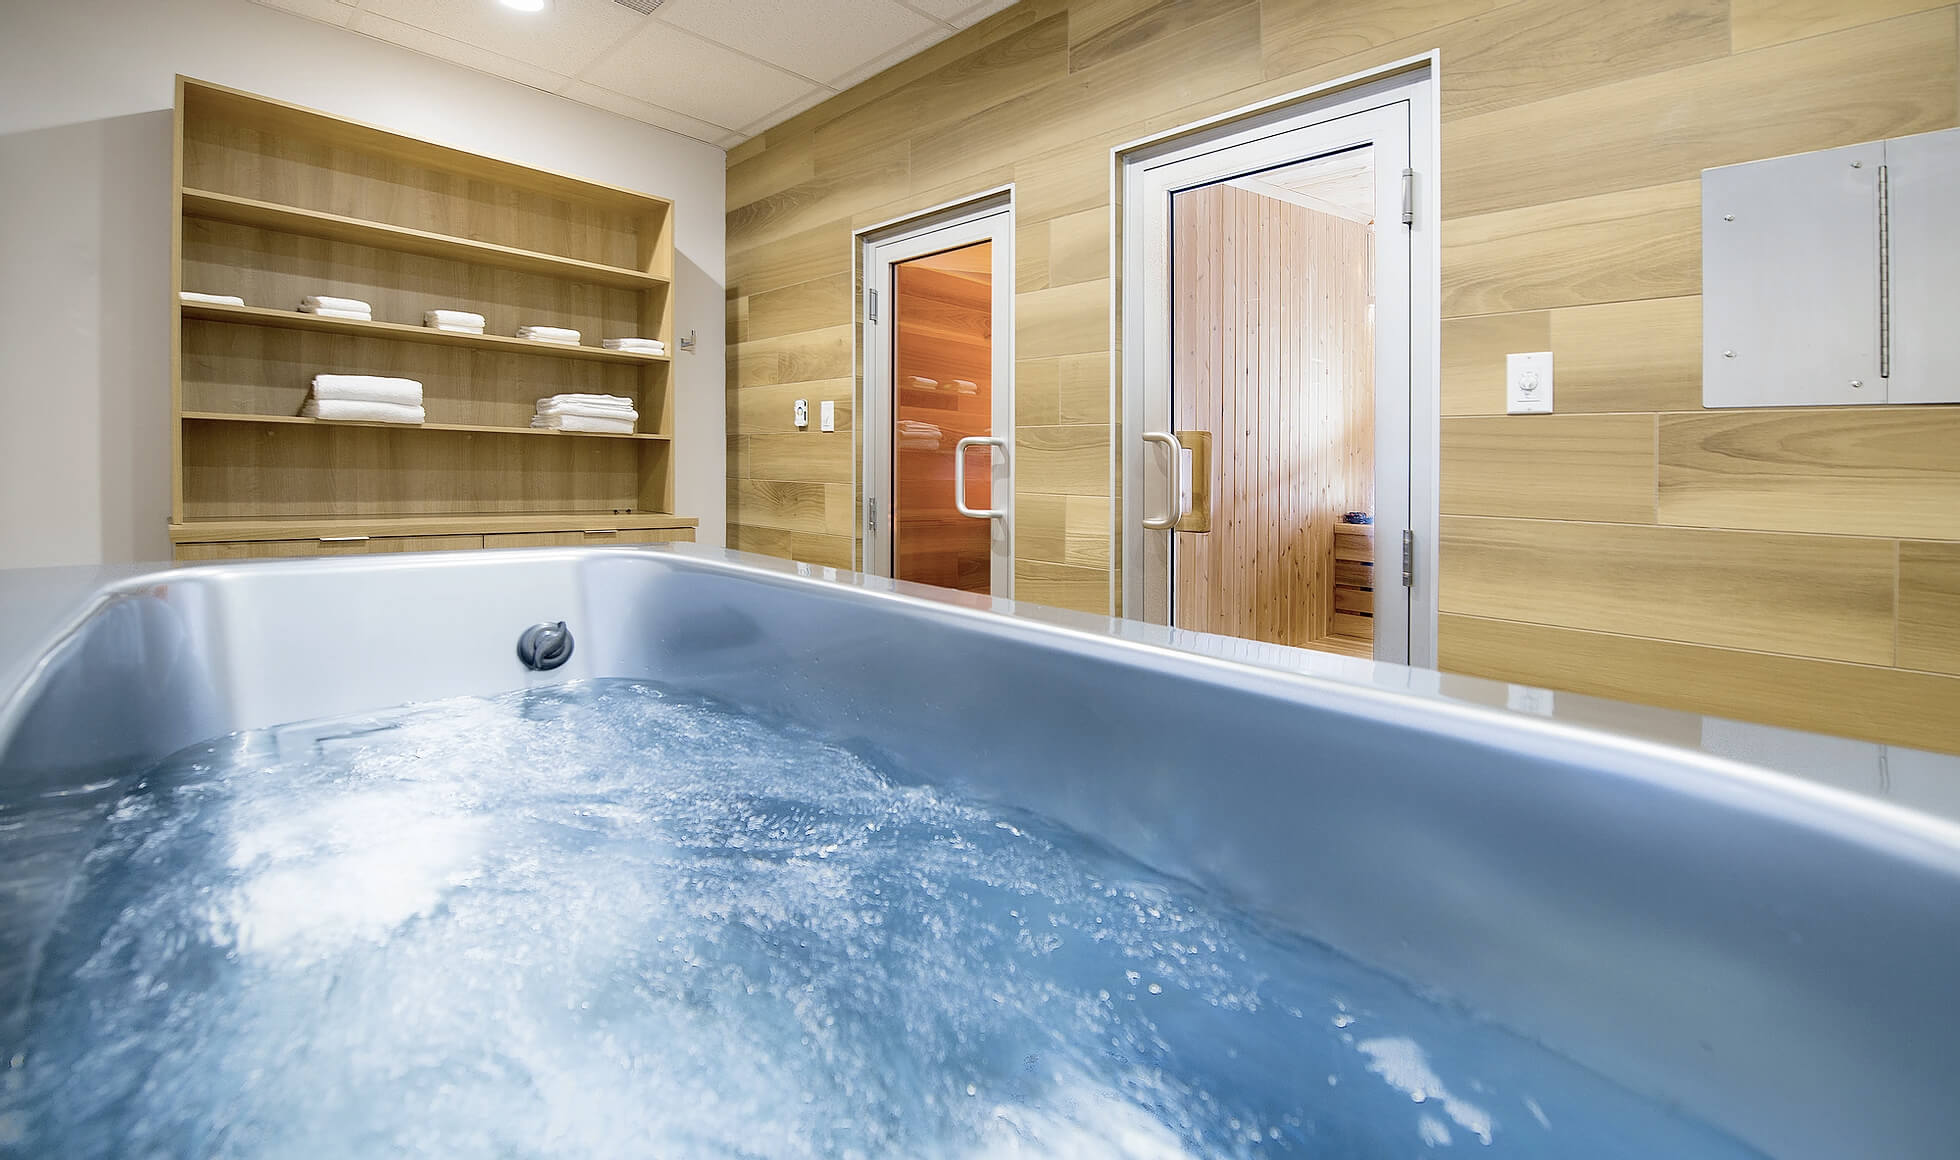 Spa at Hockey Etcetera with a jet tub, and sauna.